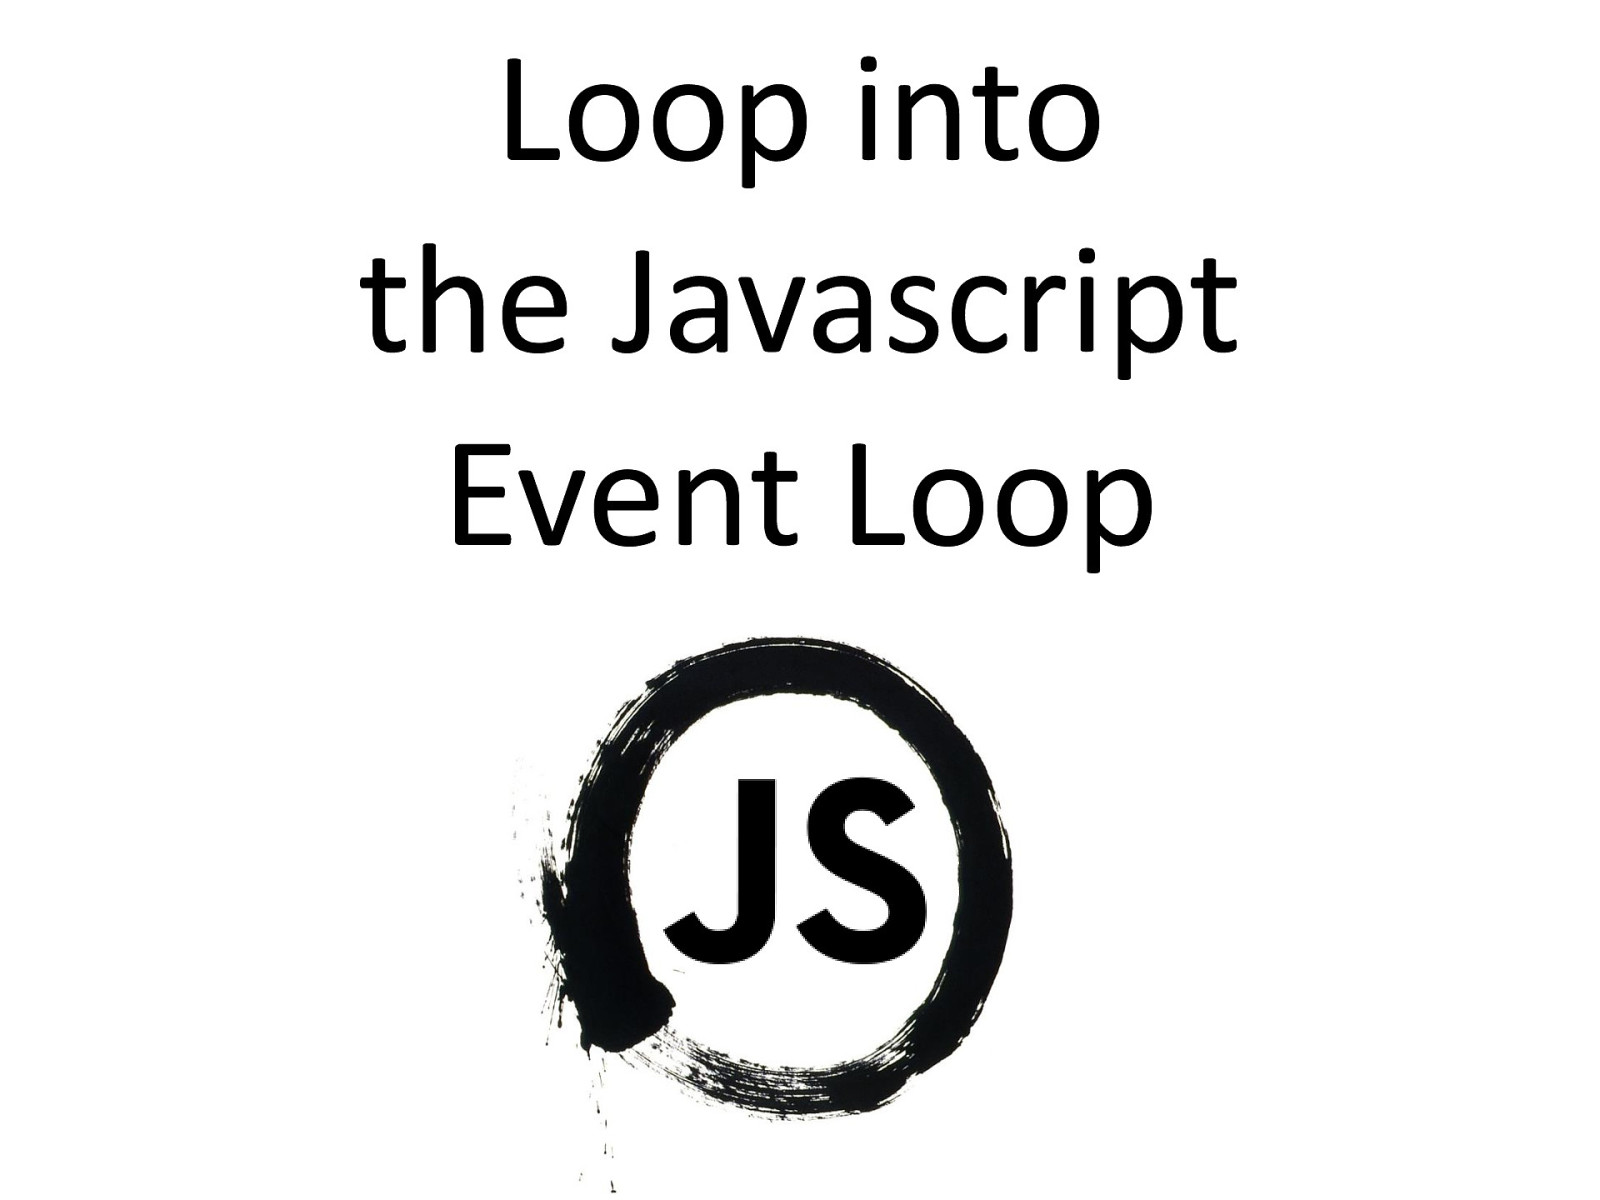 Loop into the Javascript Event Loop